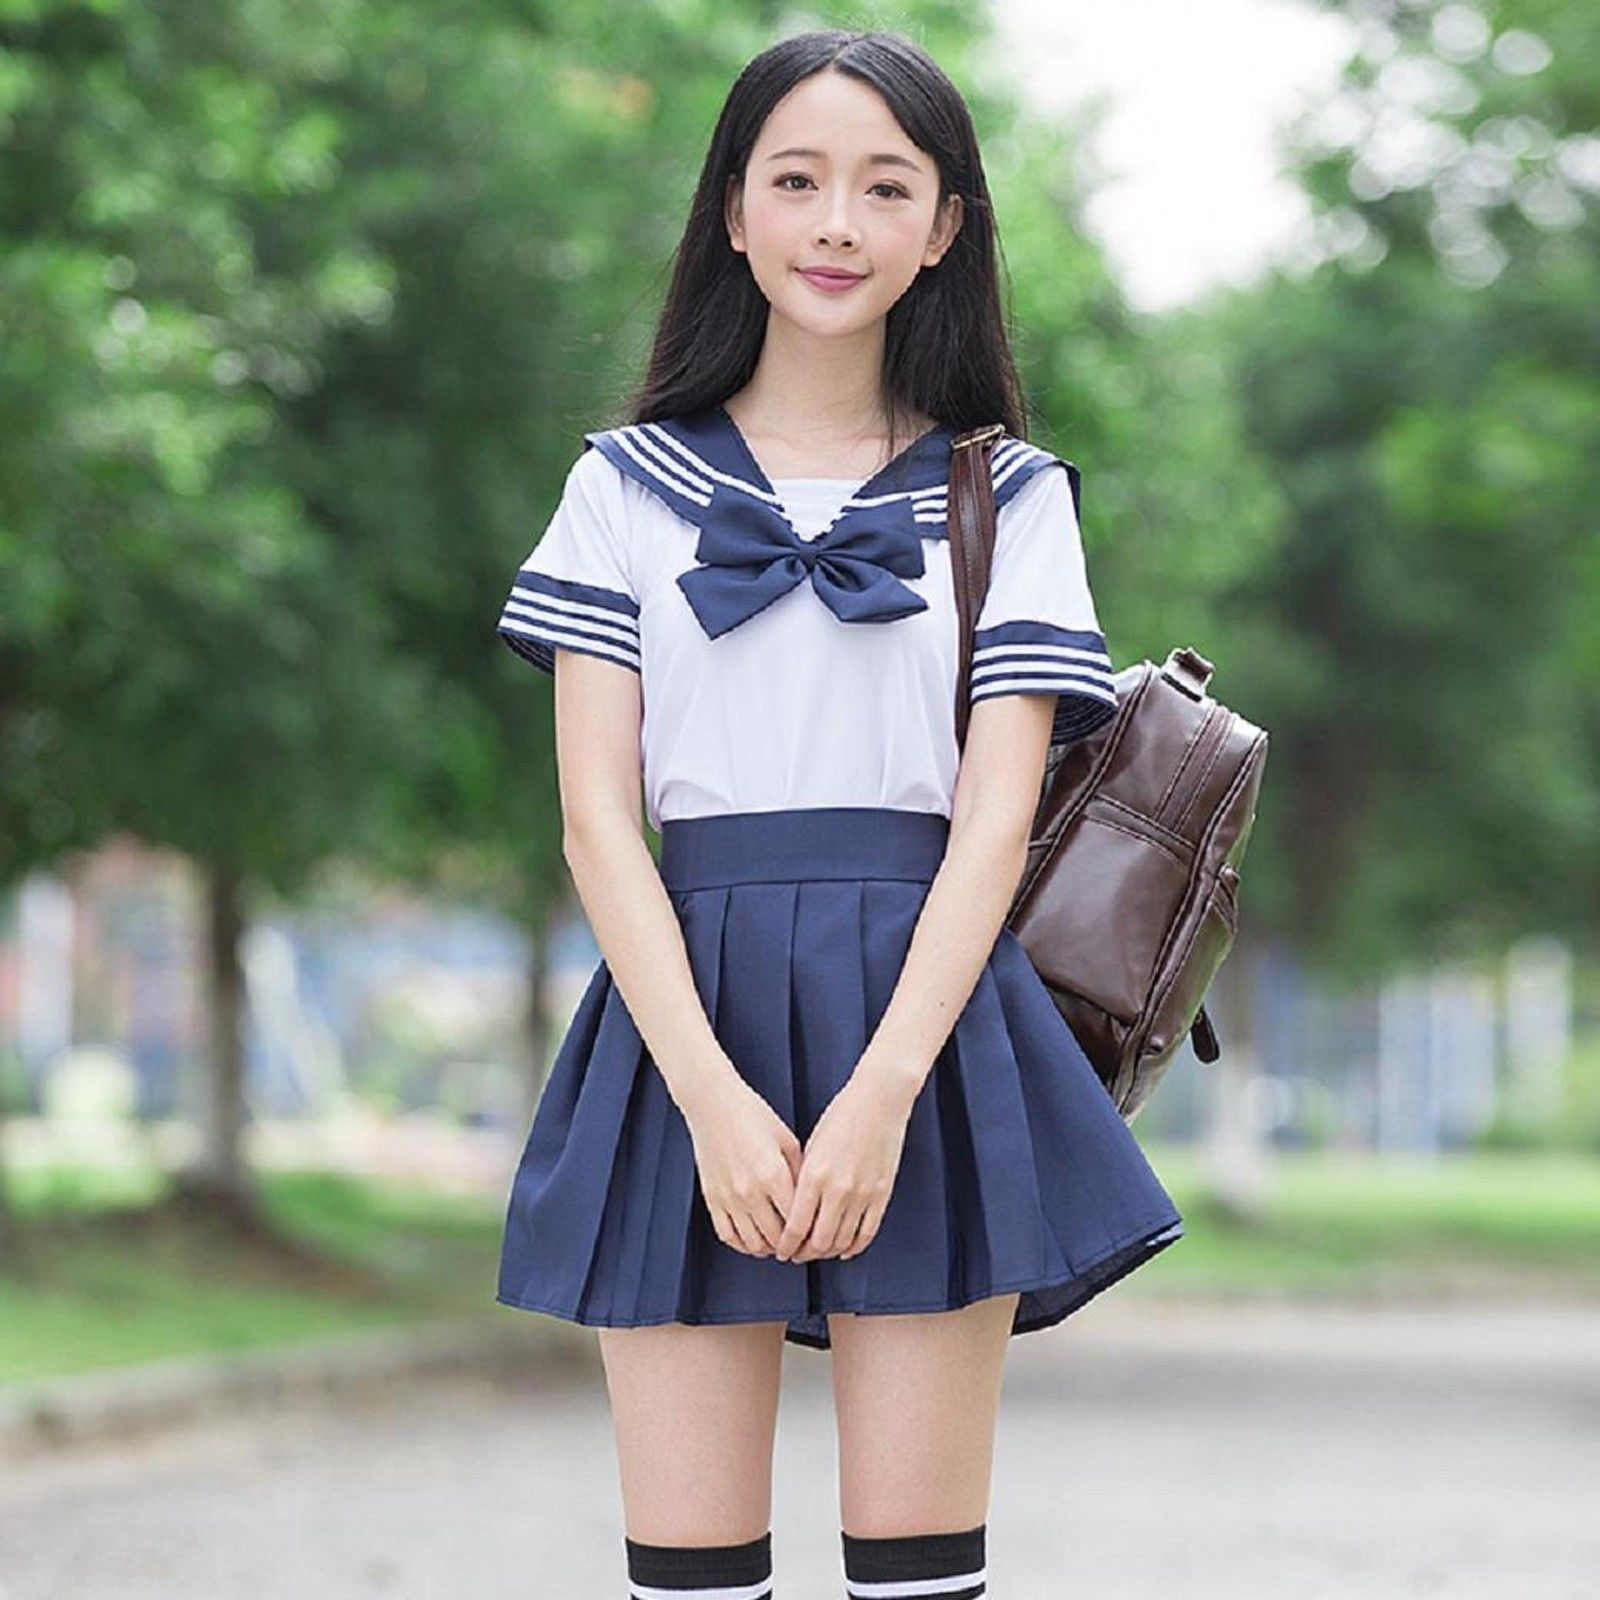 74694ee878 36 Girls High School Skirt Uniform To Wear Every Time | Clothes ...